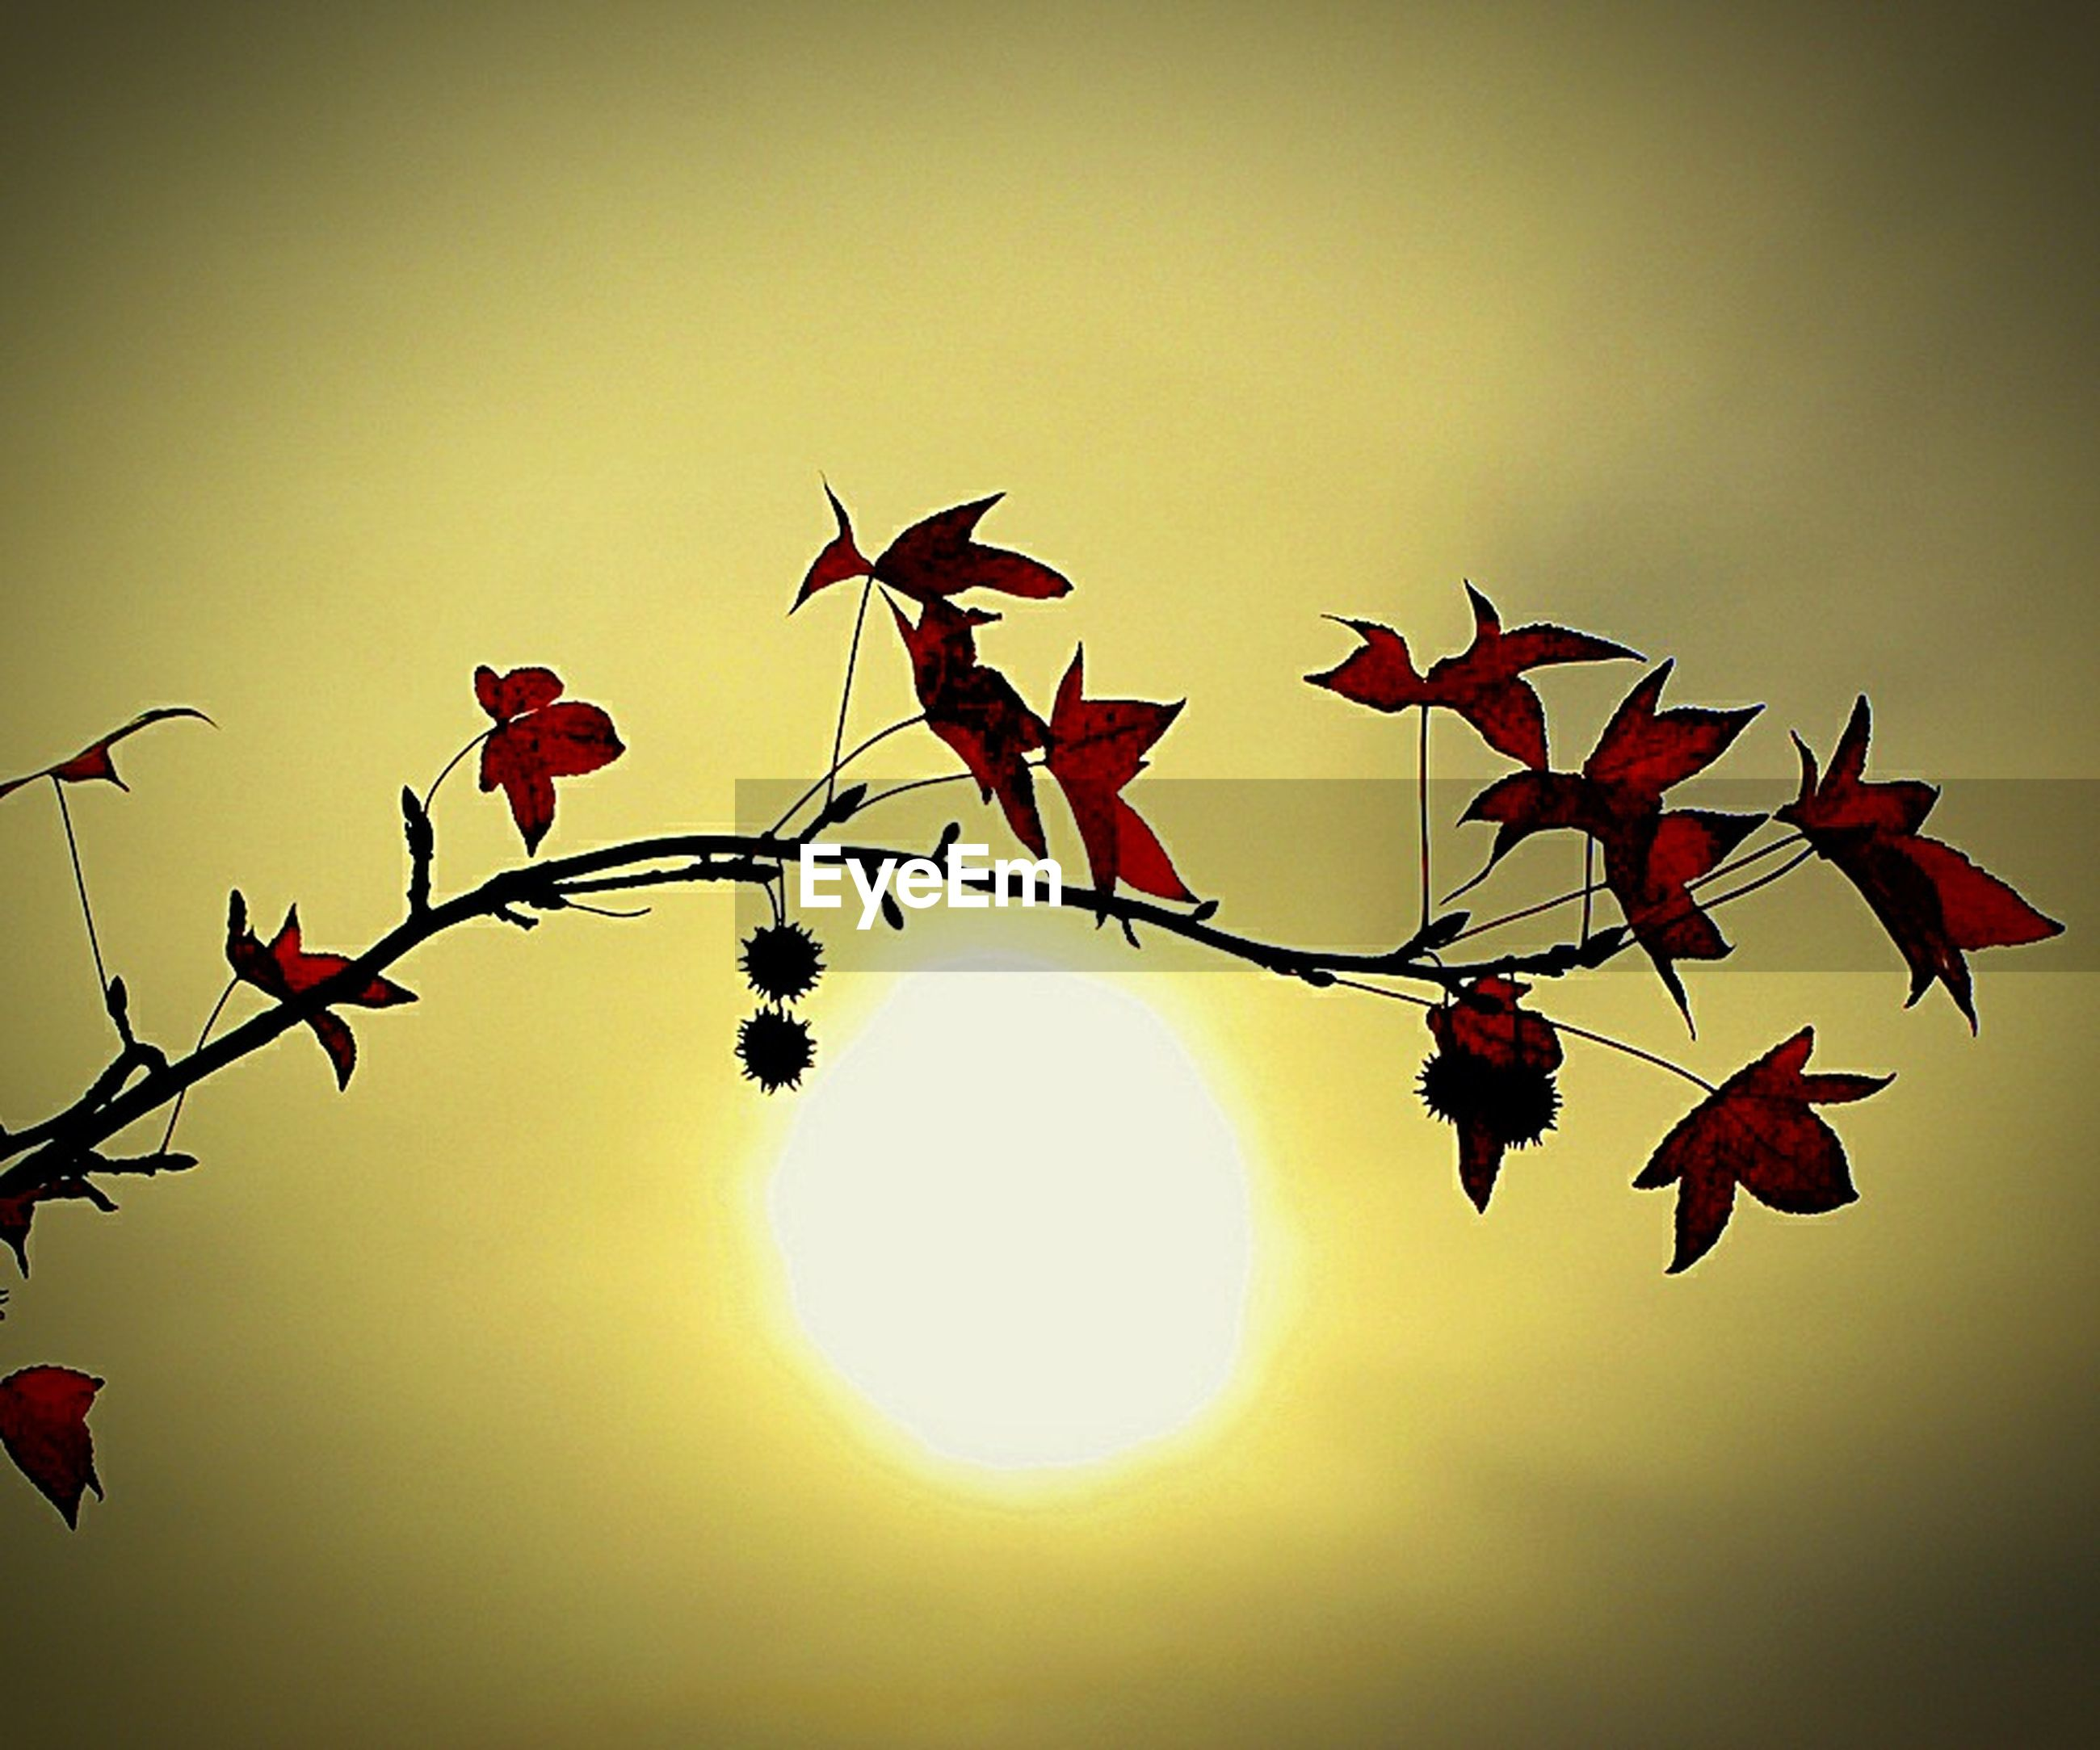 sun, branch, clear sky, low angle view, growth, nature, beauty in nature, sunset, red, freshness, twig, tree, sunlight, leaf, close-up, orange color, sky, fragility, flower, outdoors